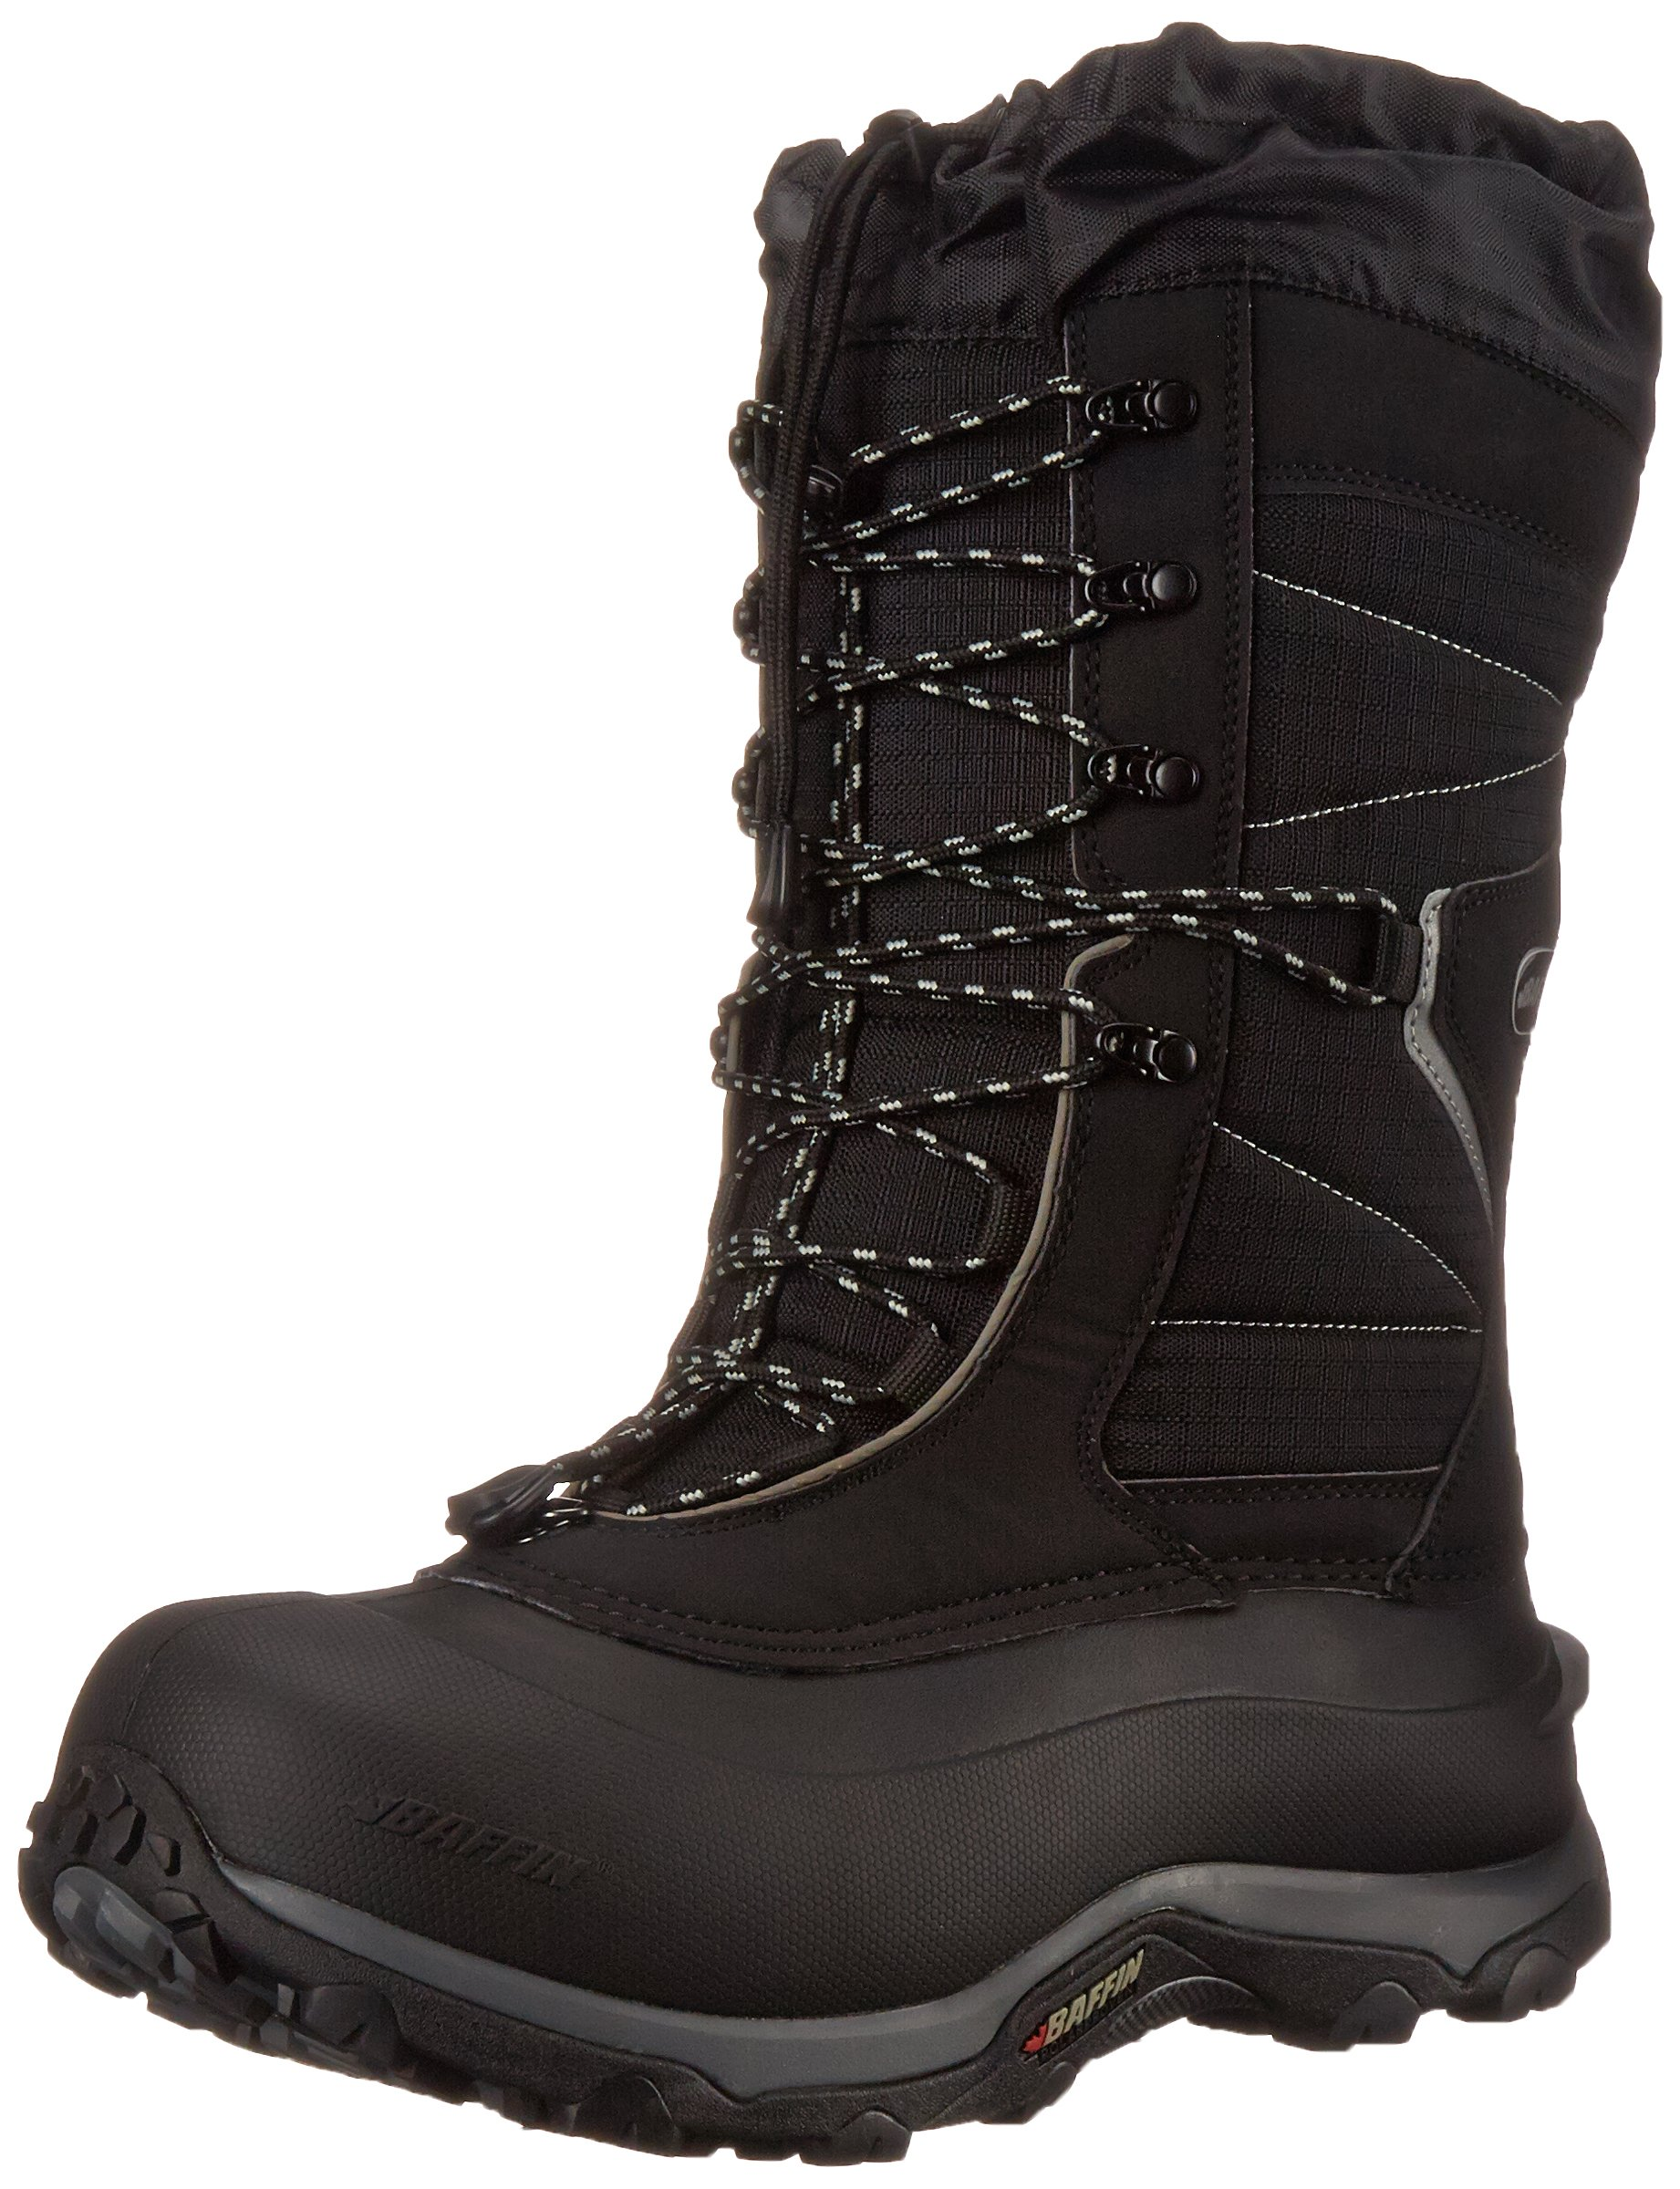 Baffin Men's Sequoia-M, Black, 14 M US by Baffin